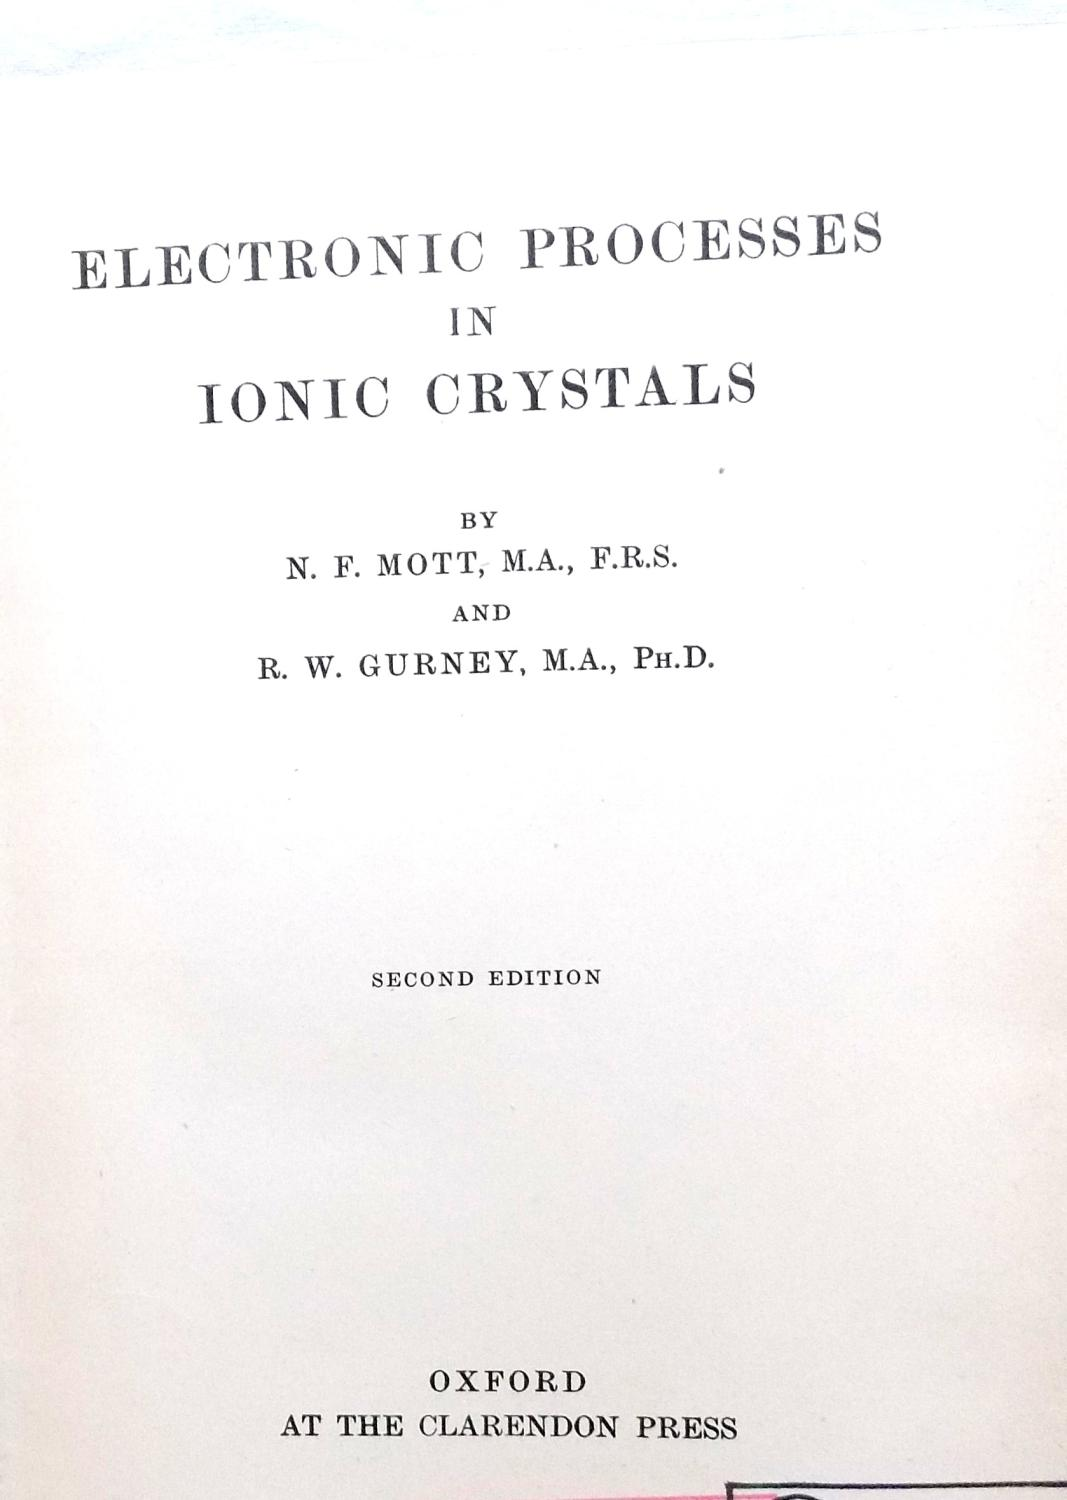 Electronic Processes in Ionic Crystals